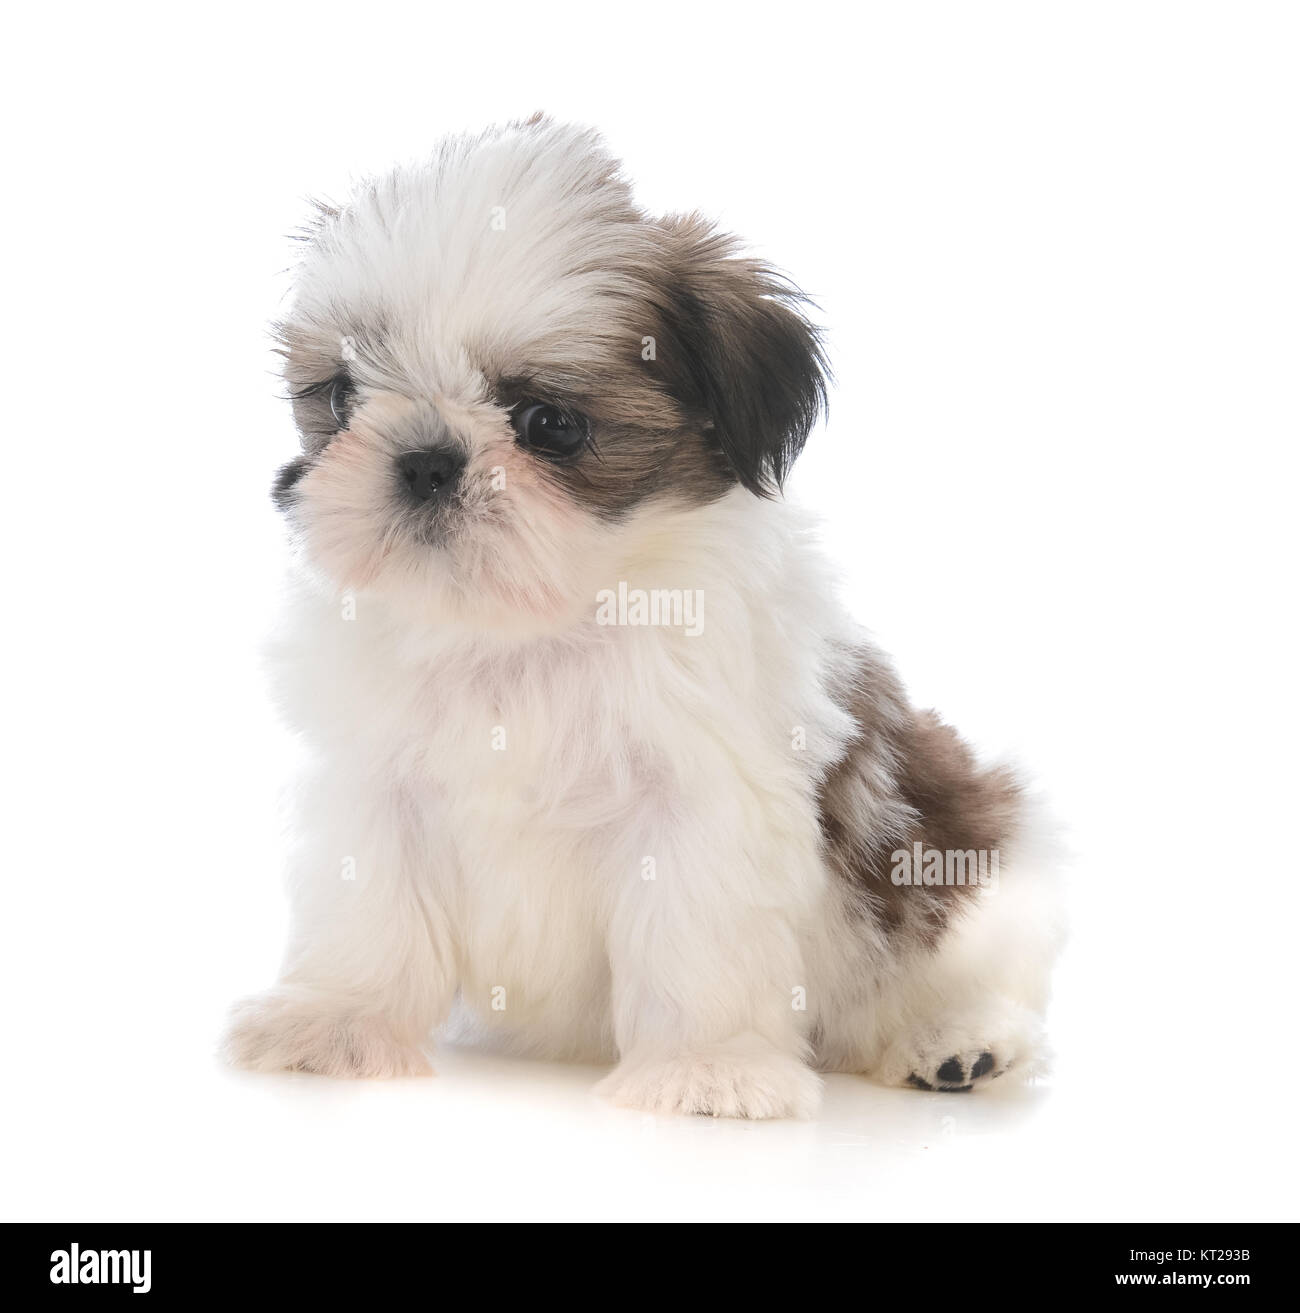 Cute Shih Tzu Puppy Sitting Isolated On White Background Stock Photo